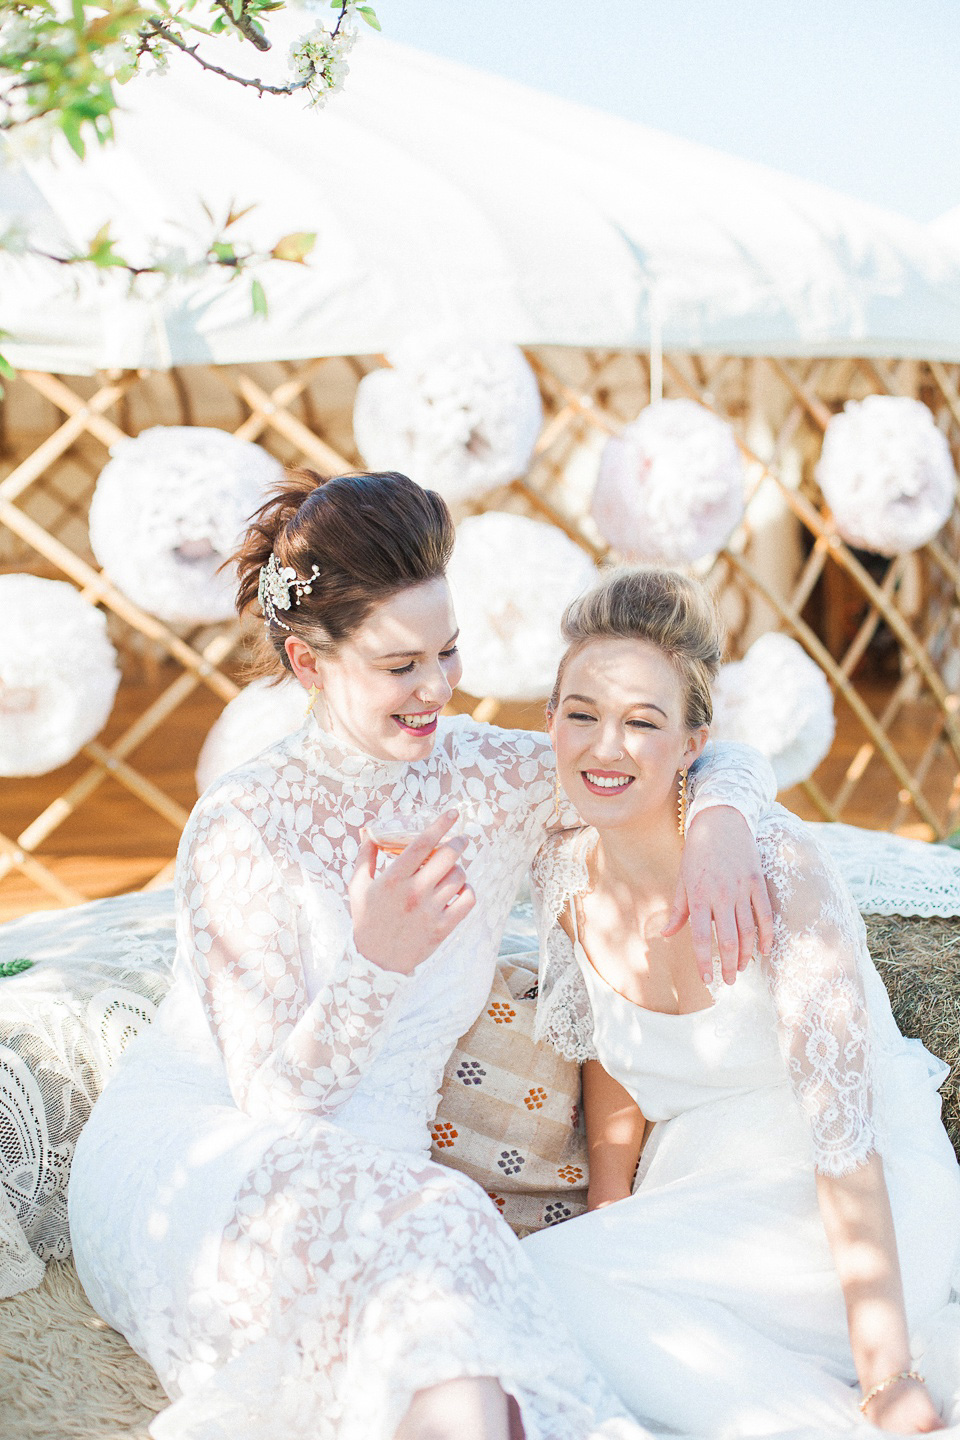 Wedding Yurts: Spring and Summer Boho Luxe Glamour in Festival Bride Style